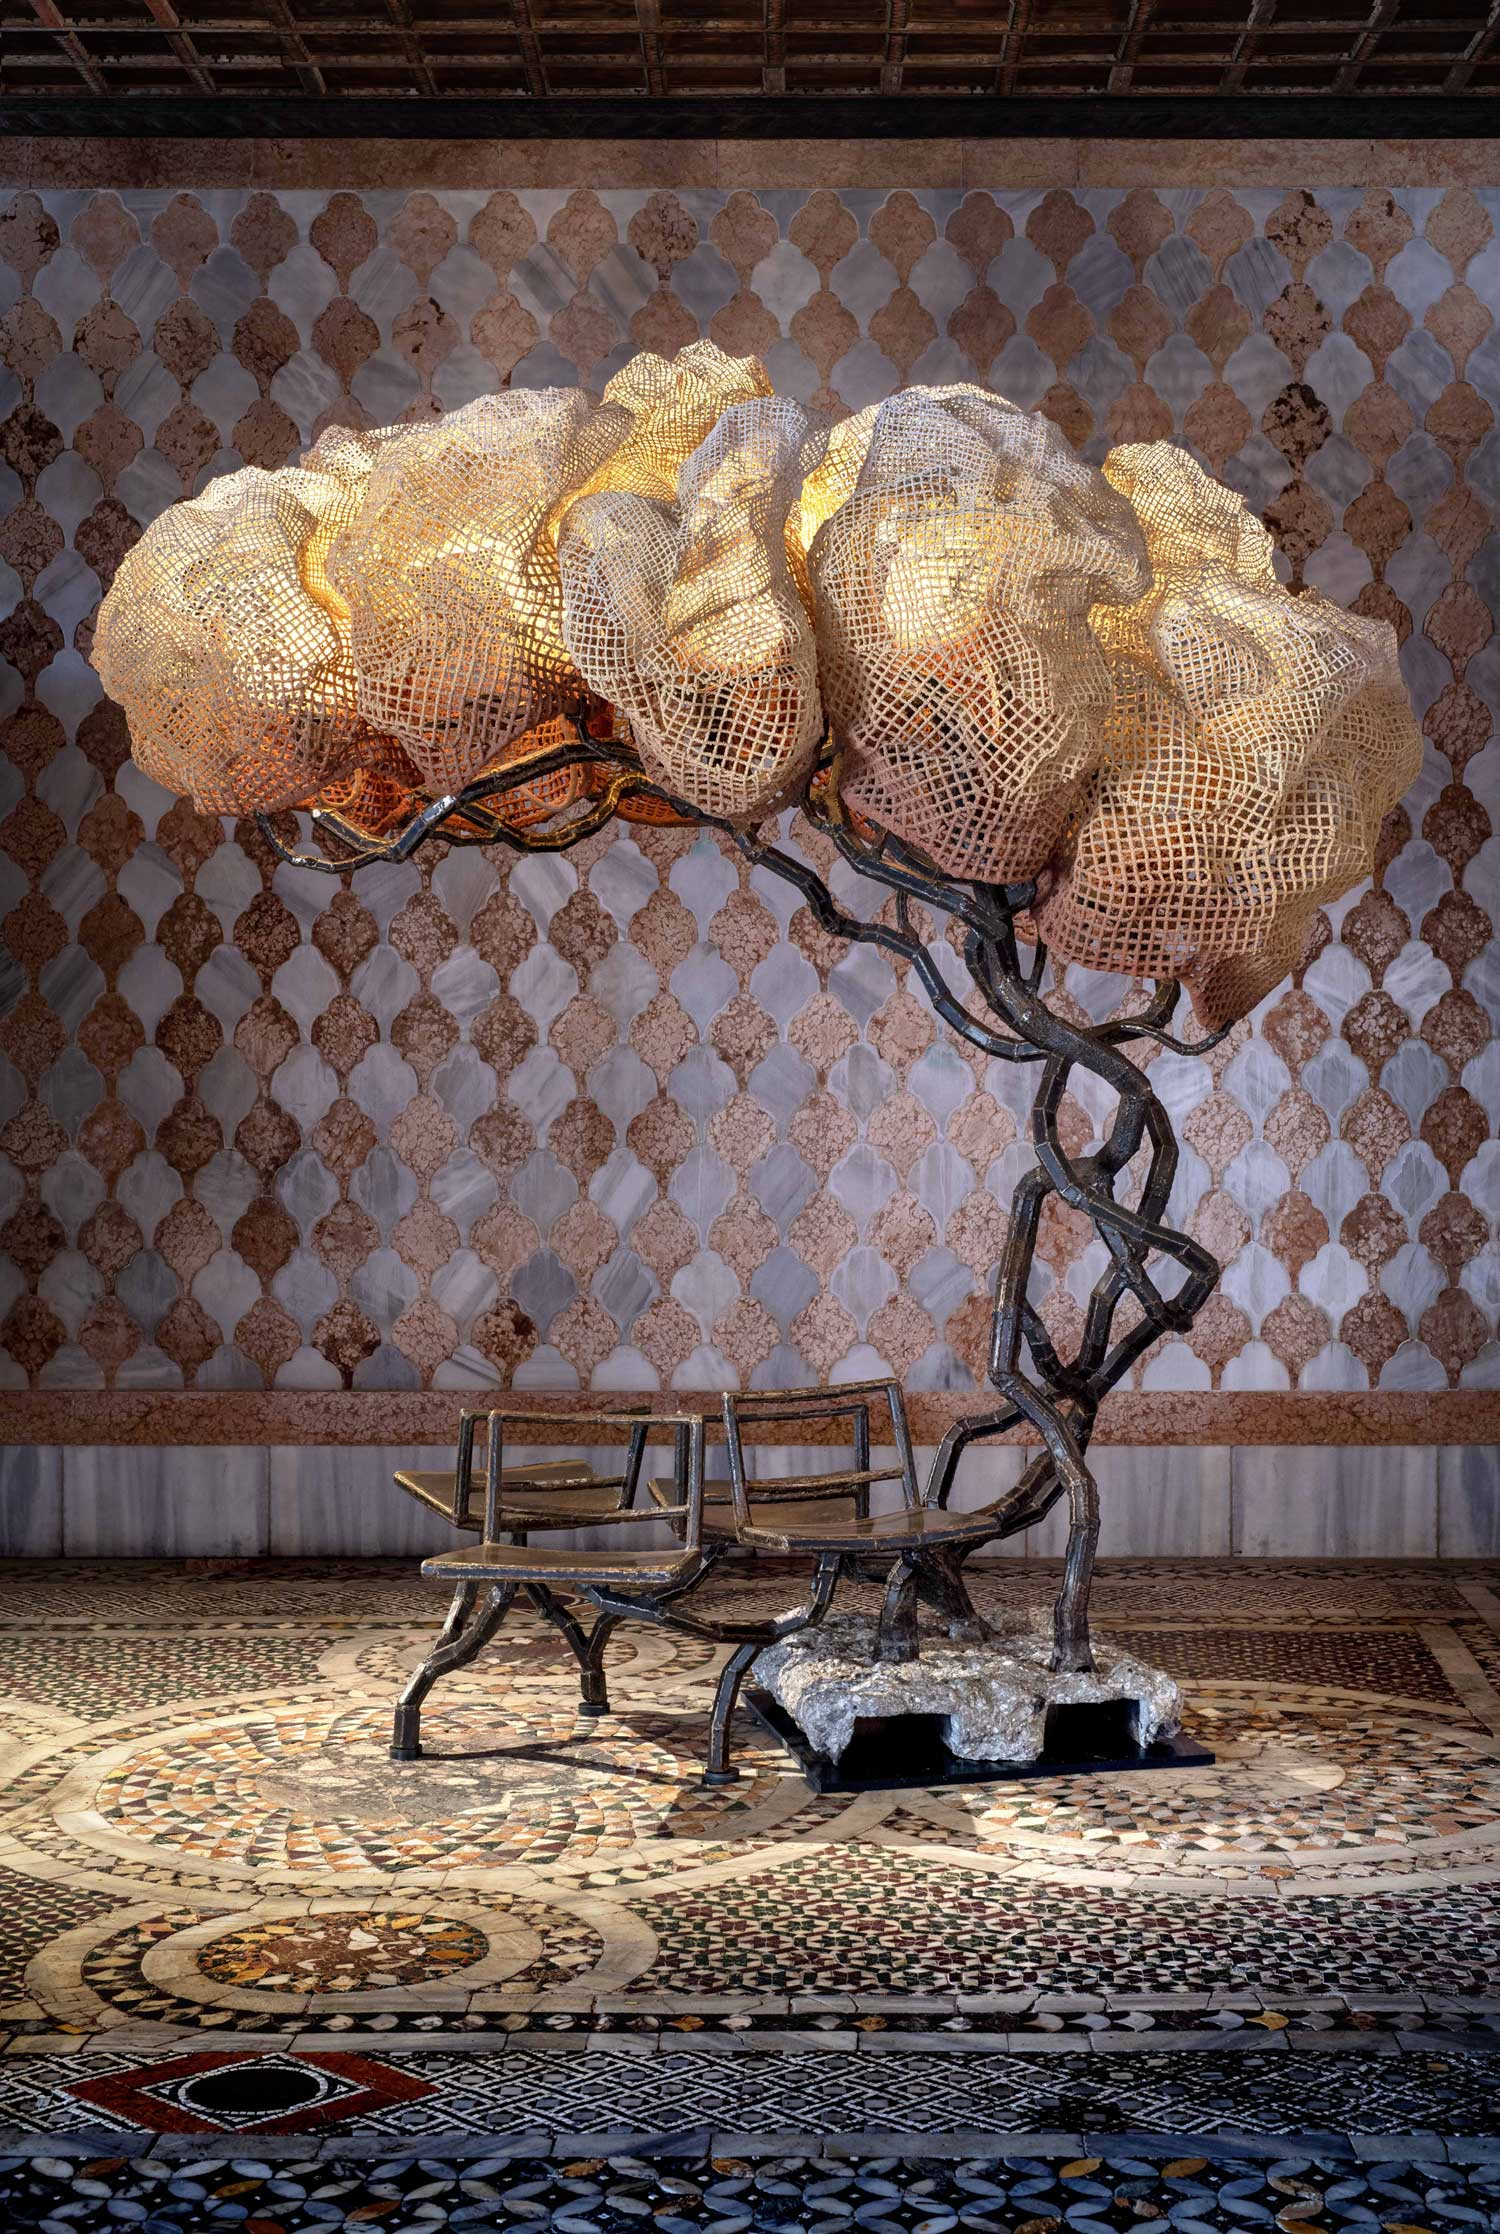 Under A Light Tree by Nacho Carbonell at Venice Art Biennale 2019 | Yellowtrace